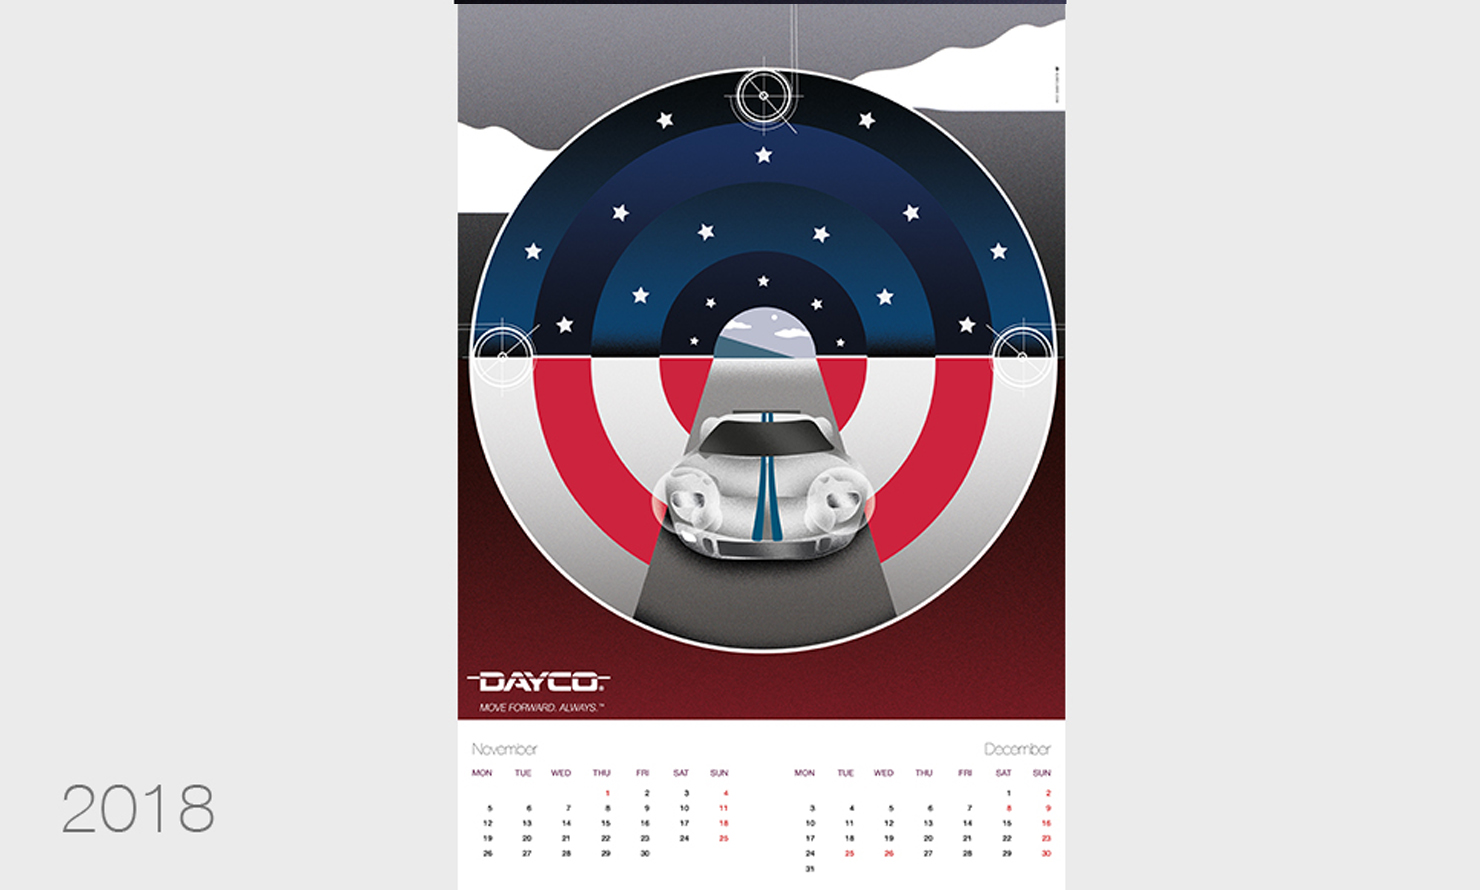 https://kubelibre.com/uploads/Slider-work-tutti-clienti/dayco-calendario-2018-6.jpg